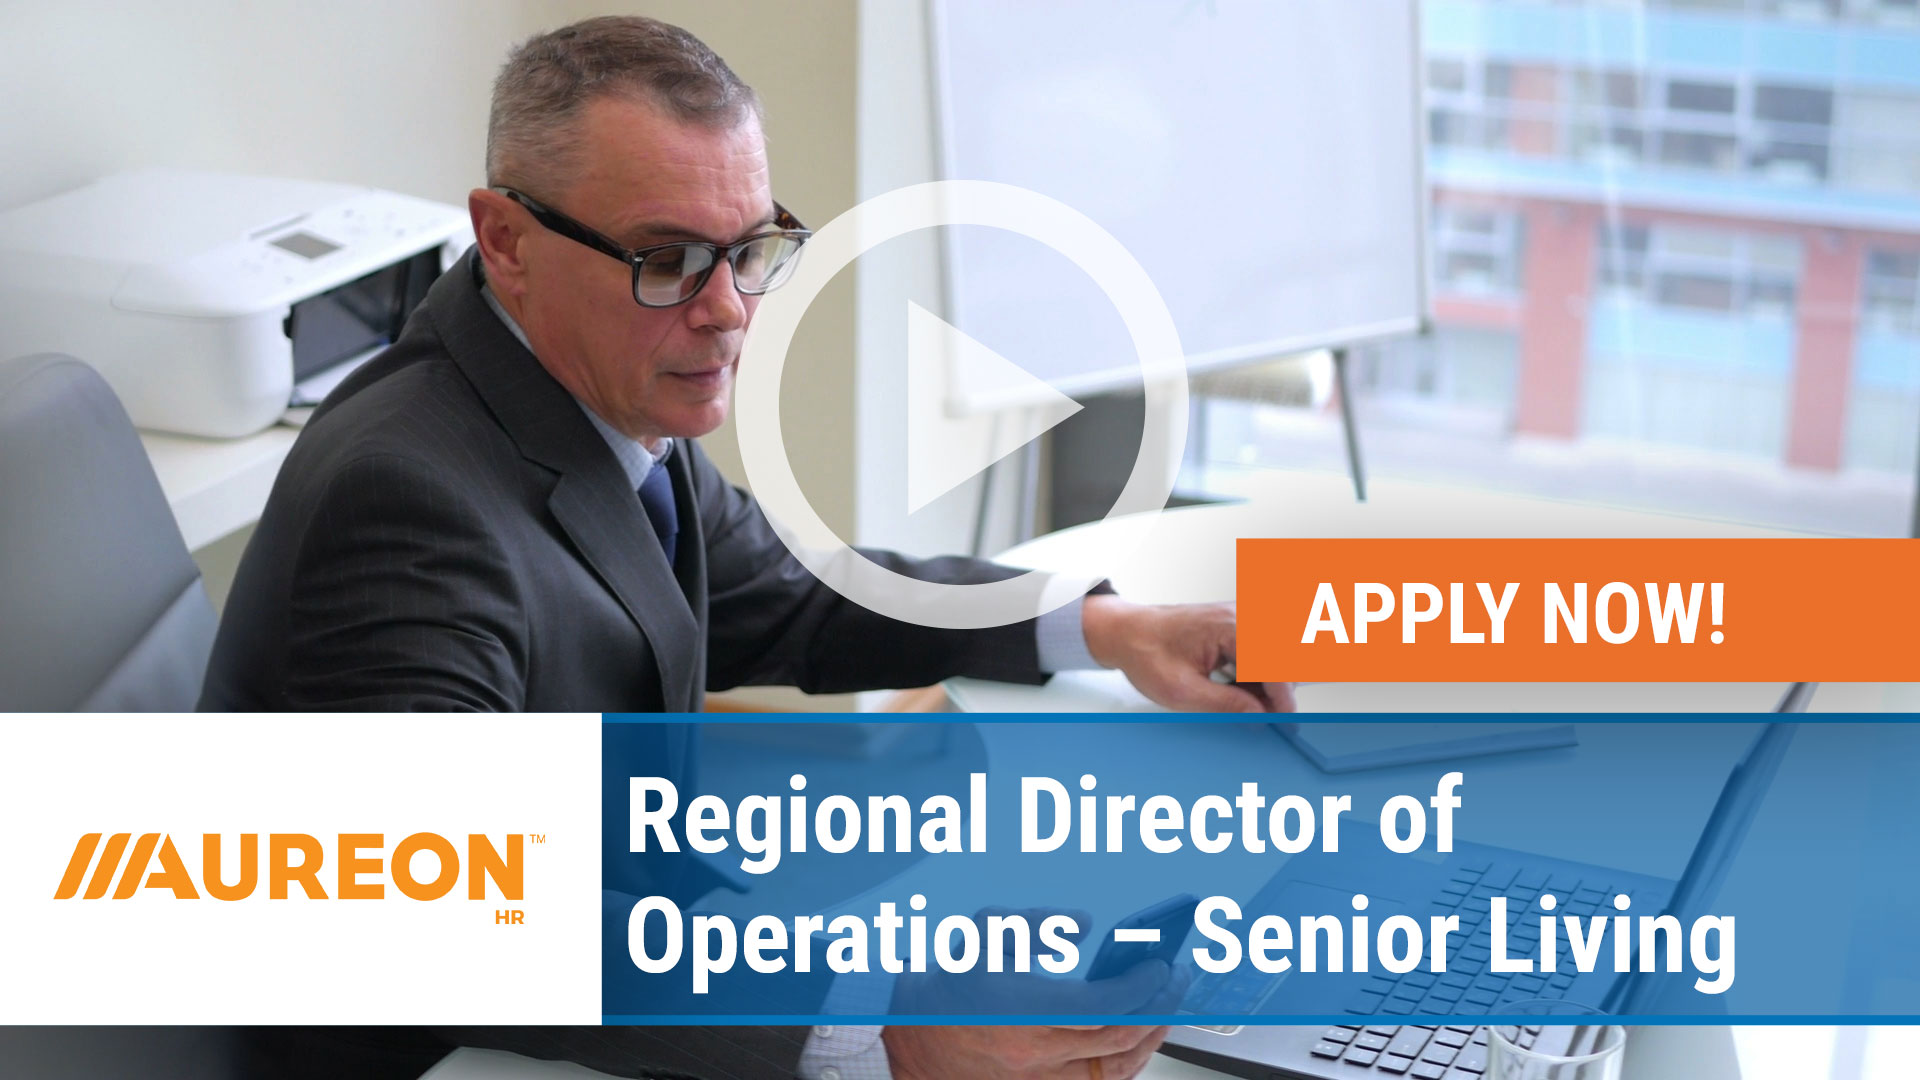 Watch our careers video for available job opening Regional Director of Operations – Senior Living in Orlando, Florida